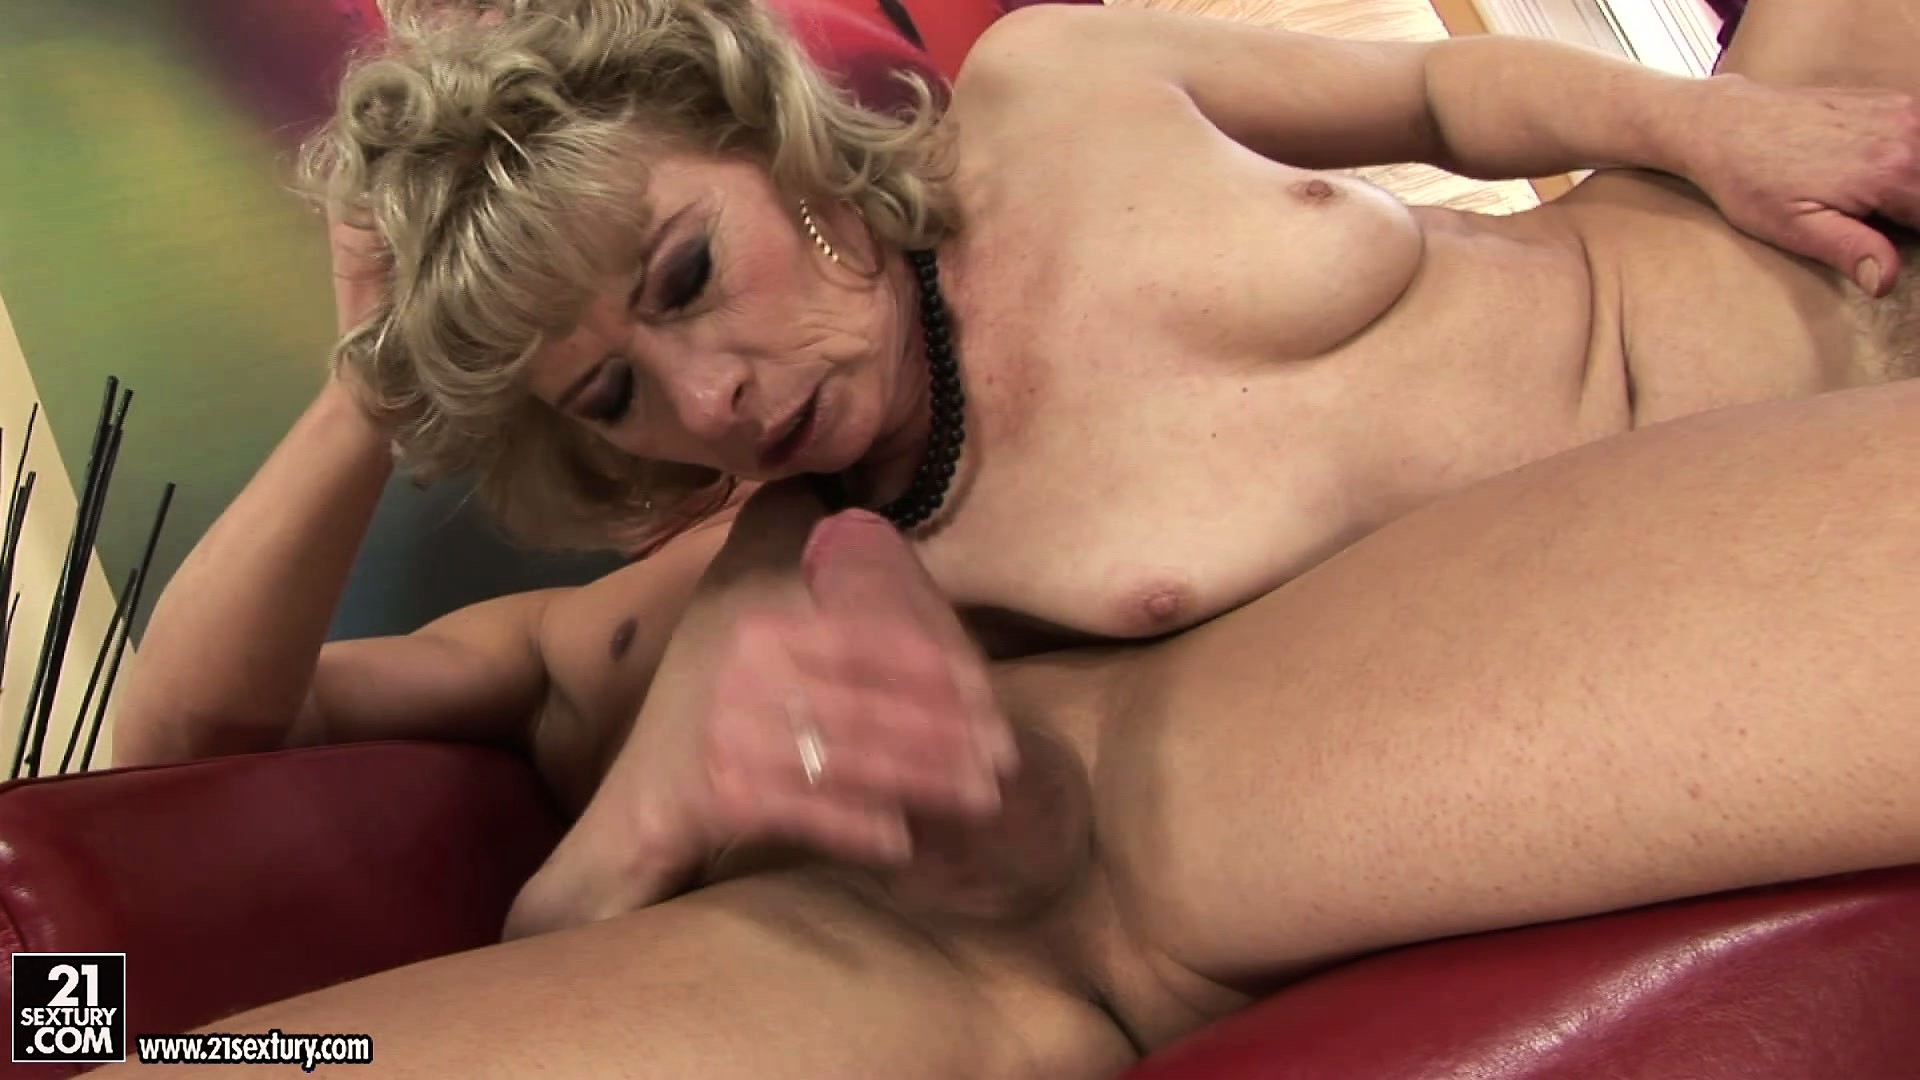 Sex Movie of Real Dirty Granny Gets To Suck On A Young Lad's Massive Member